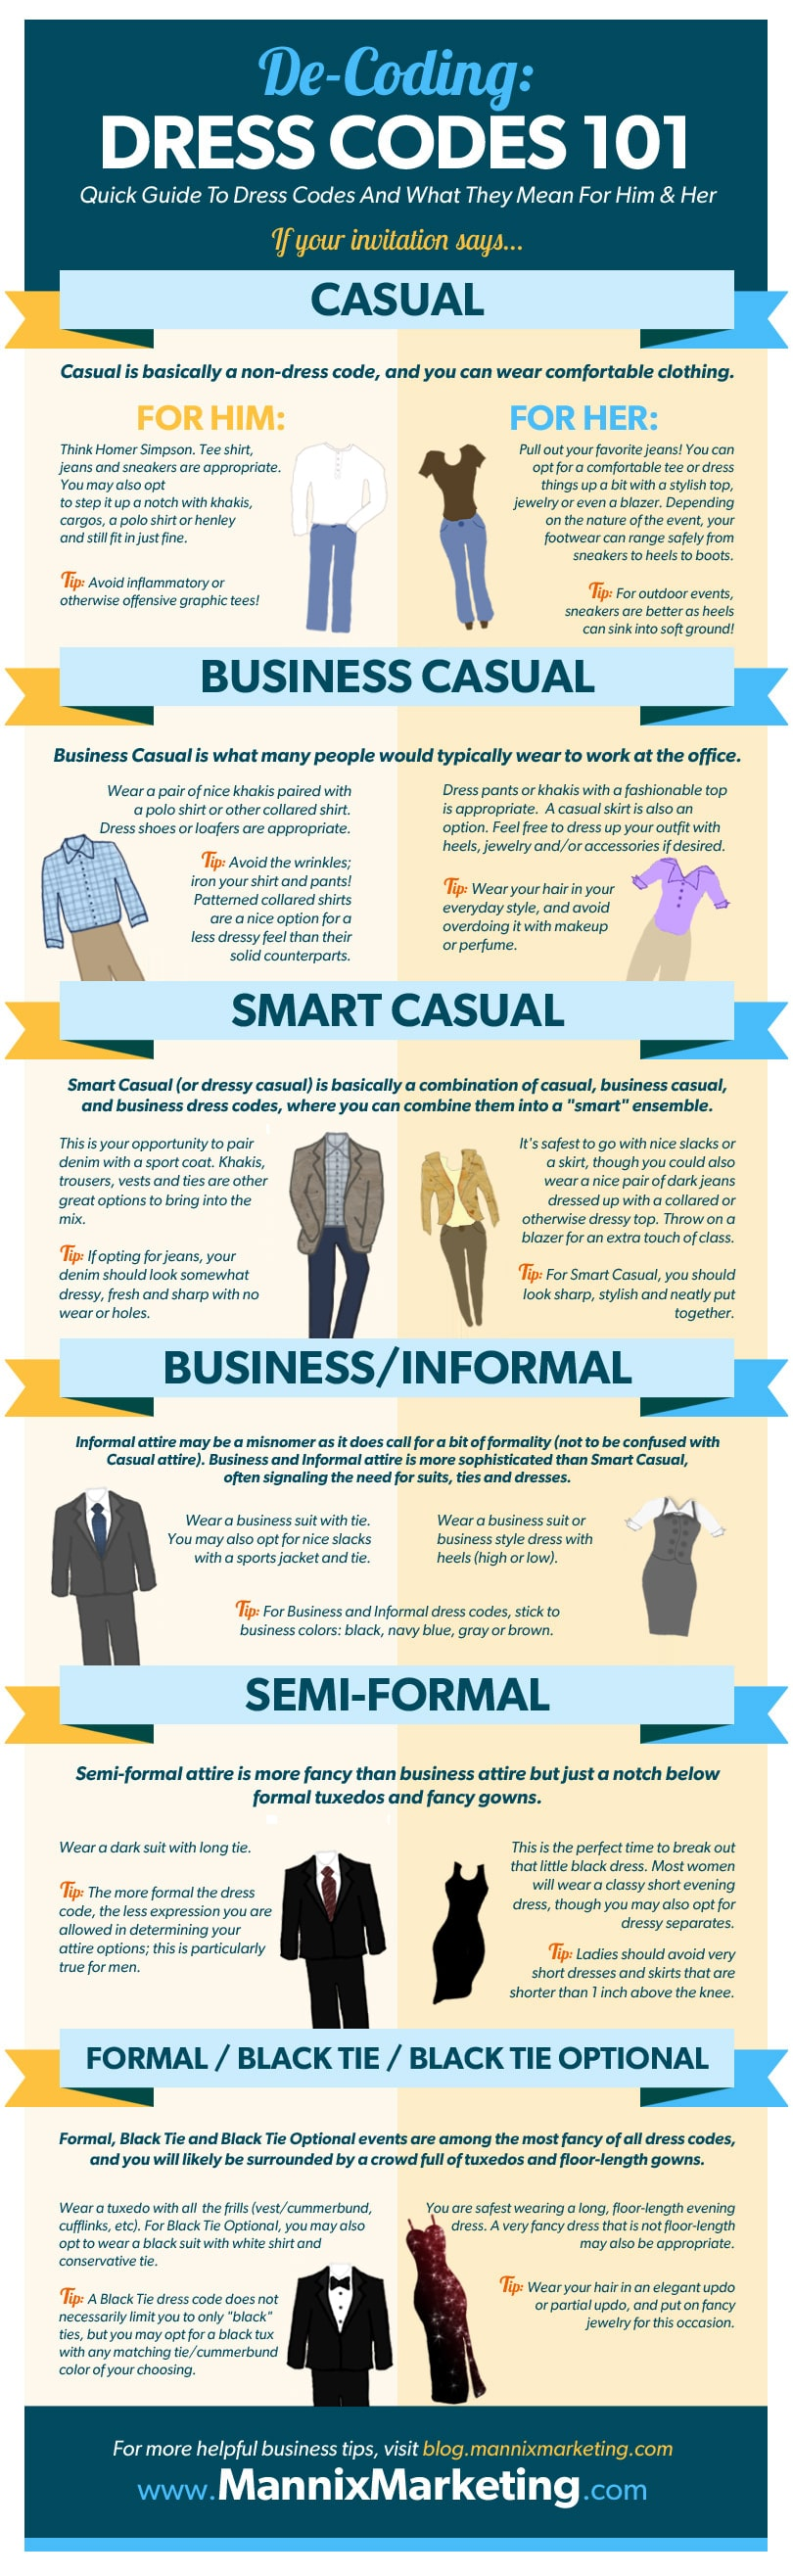 infographic-dress-codes